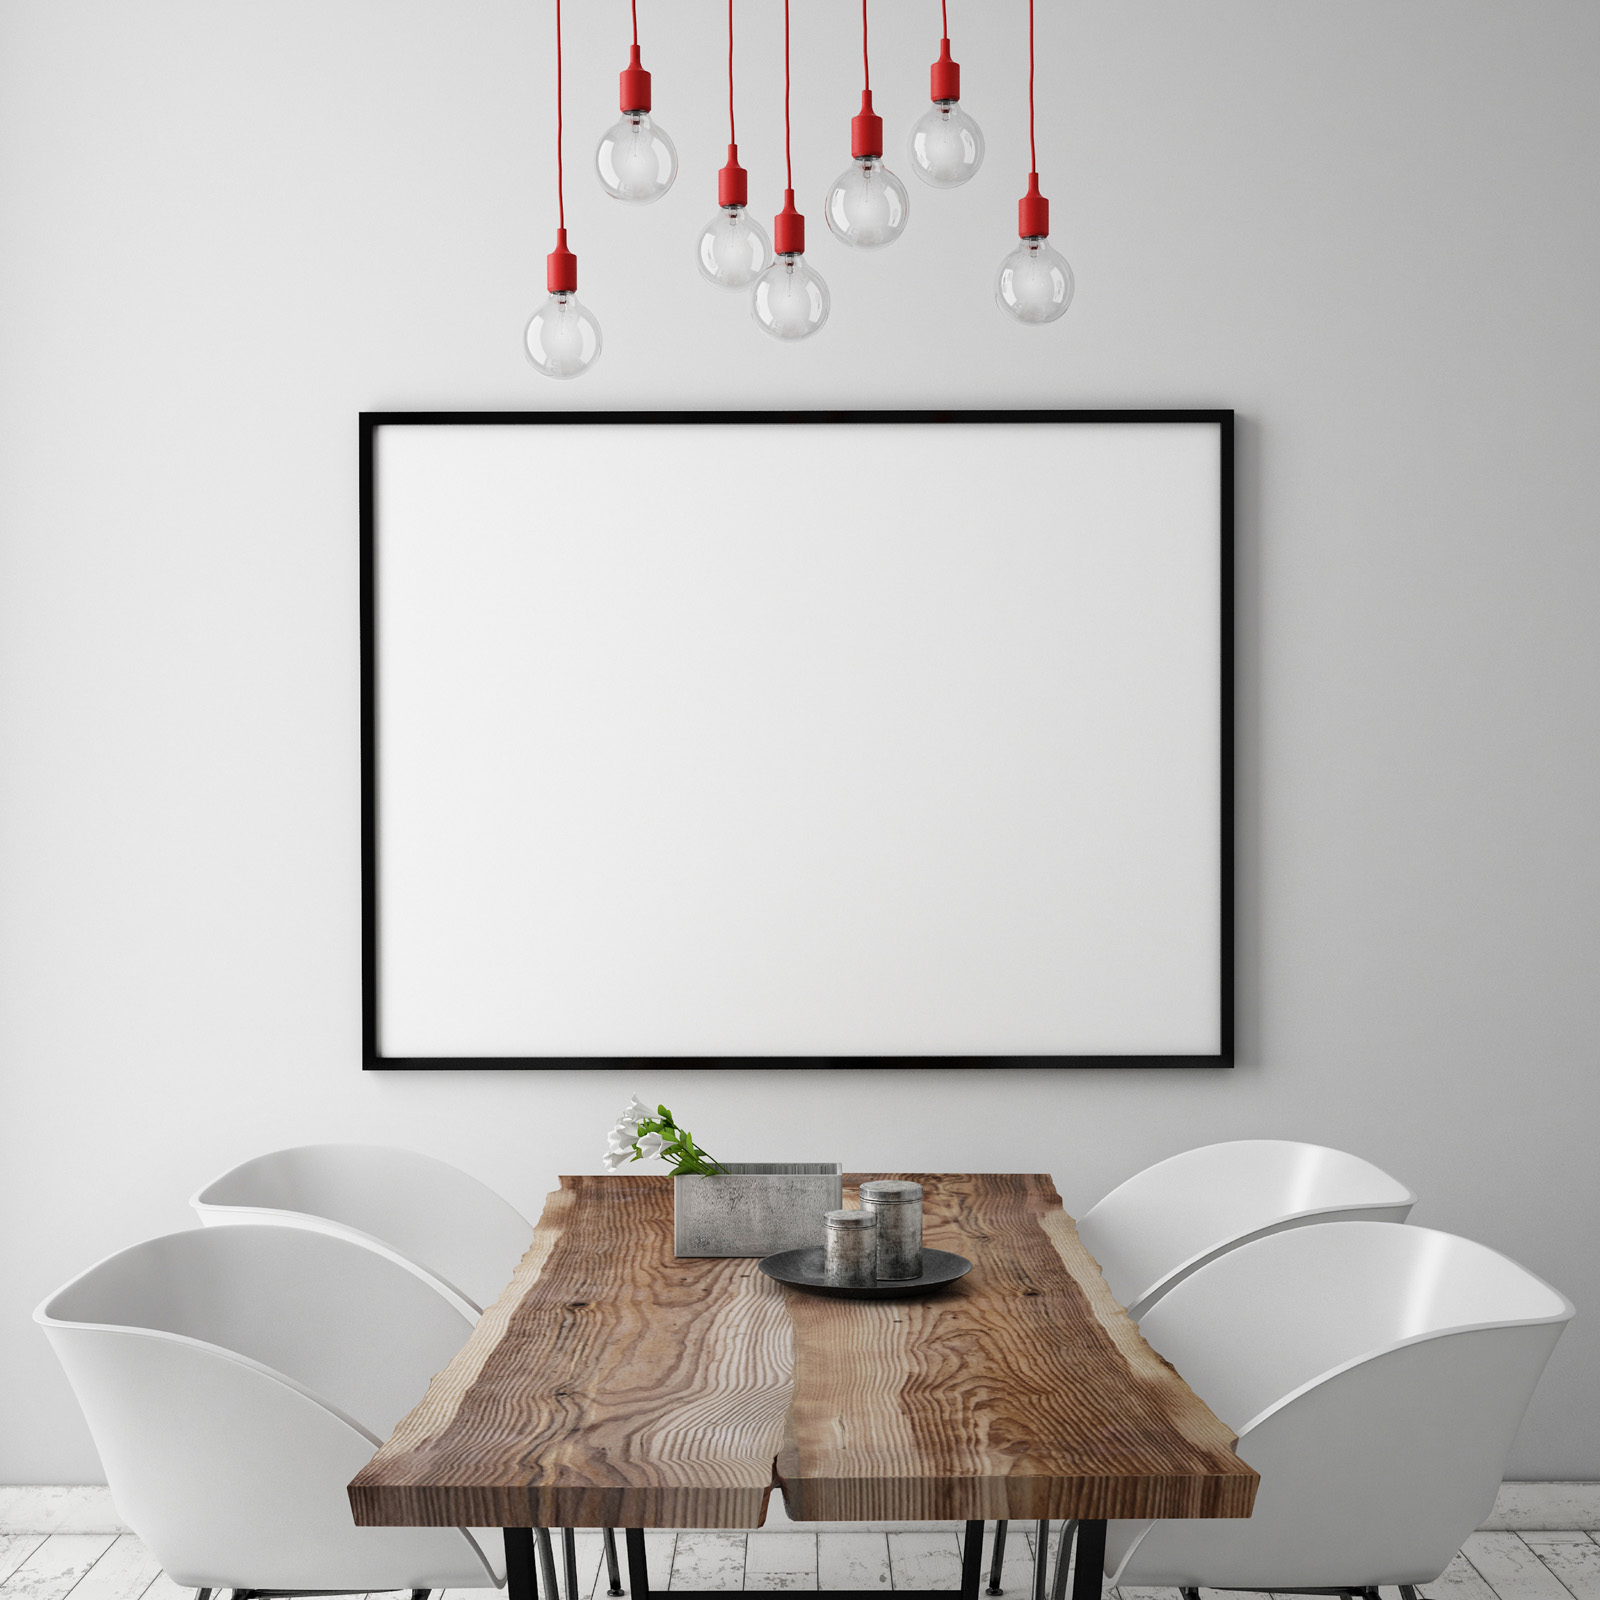 Lamp tables and chairs with a blank picture frame 51630